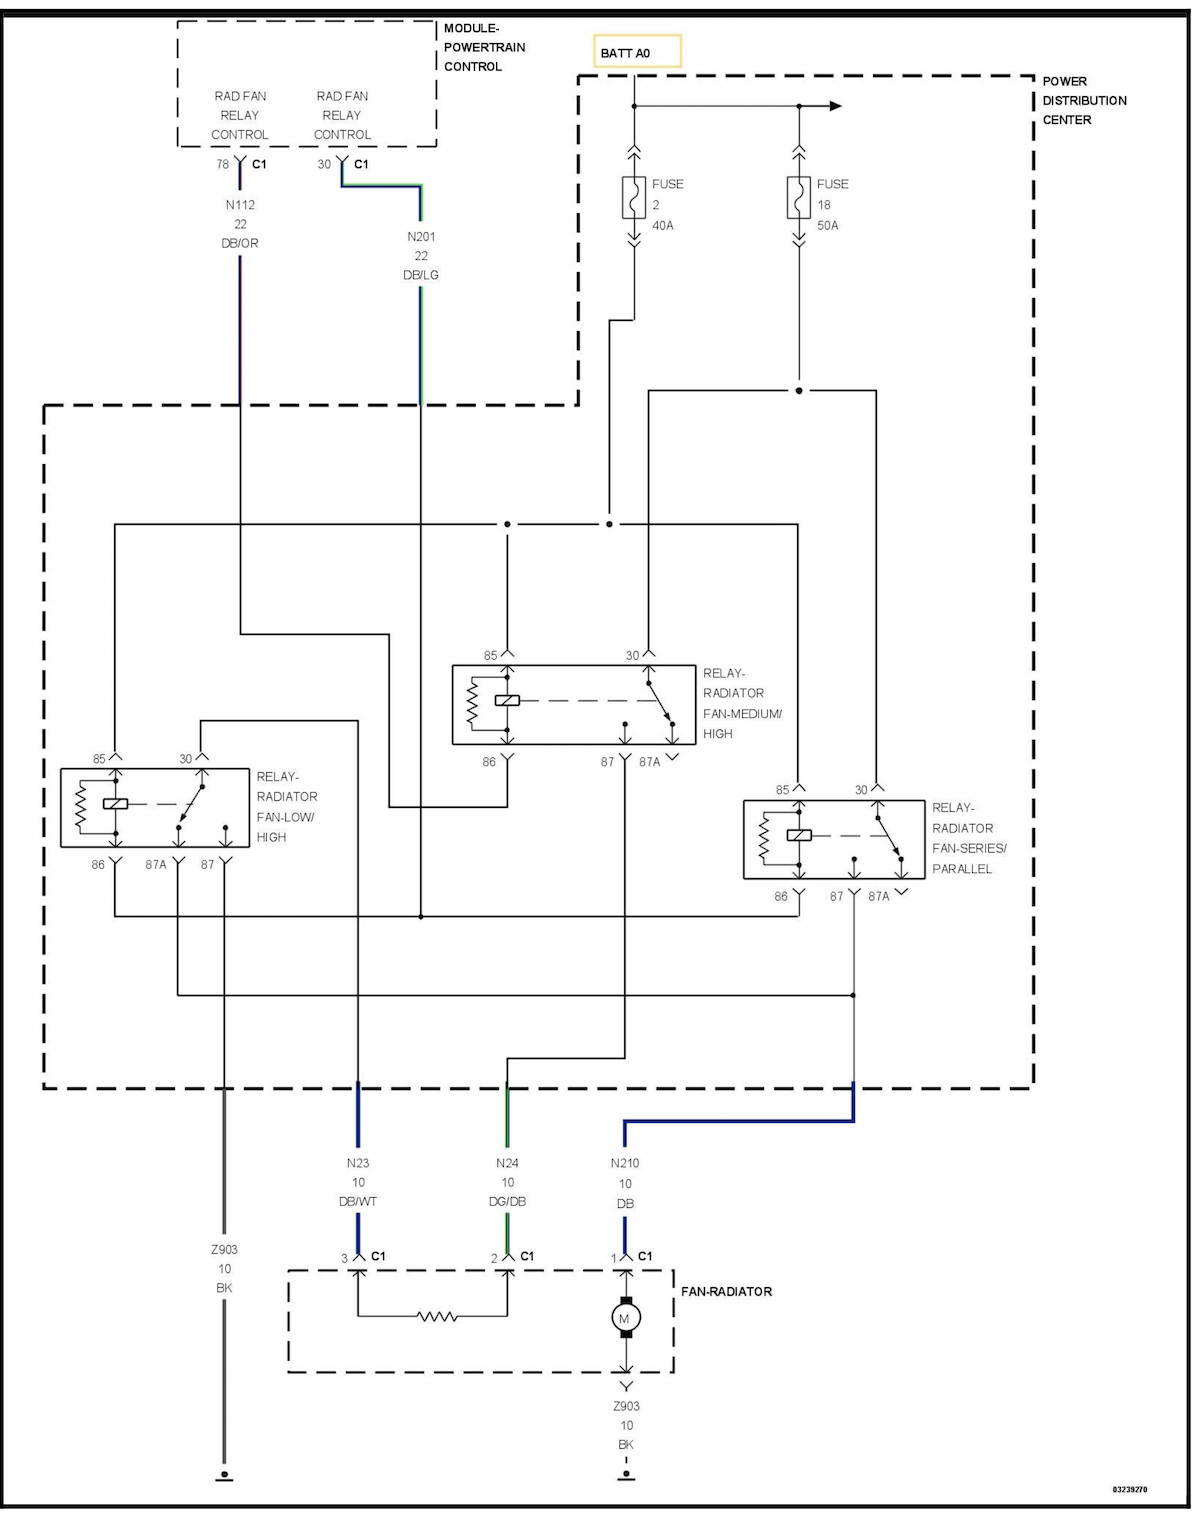 2010 dodge charger wiring diagram cooling fan operation dodge challenger forum  cooling fan operation dodge